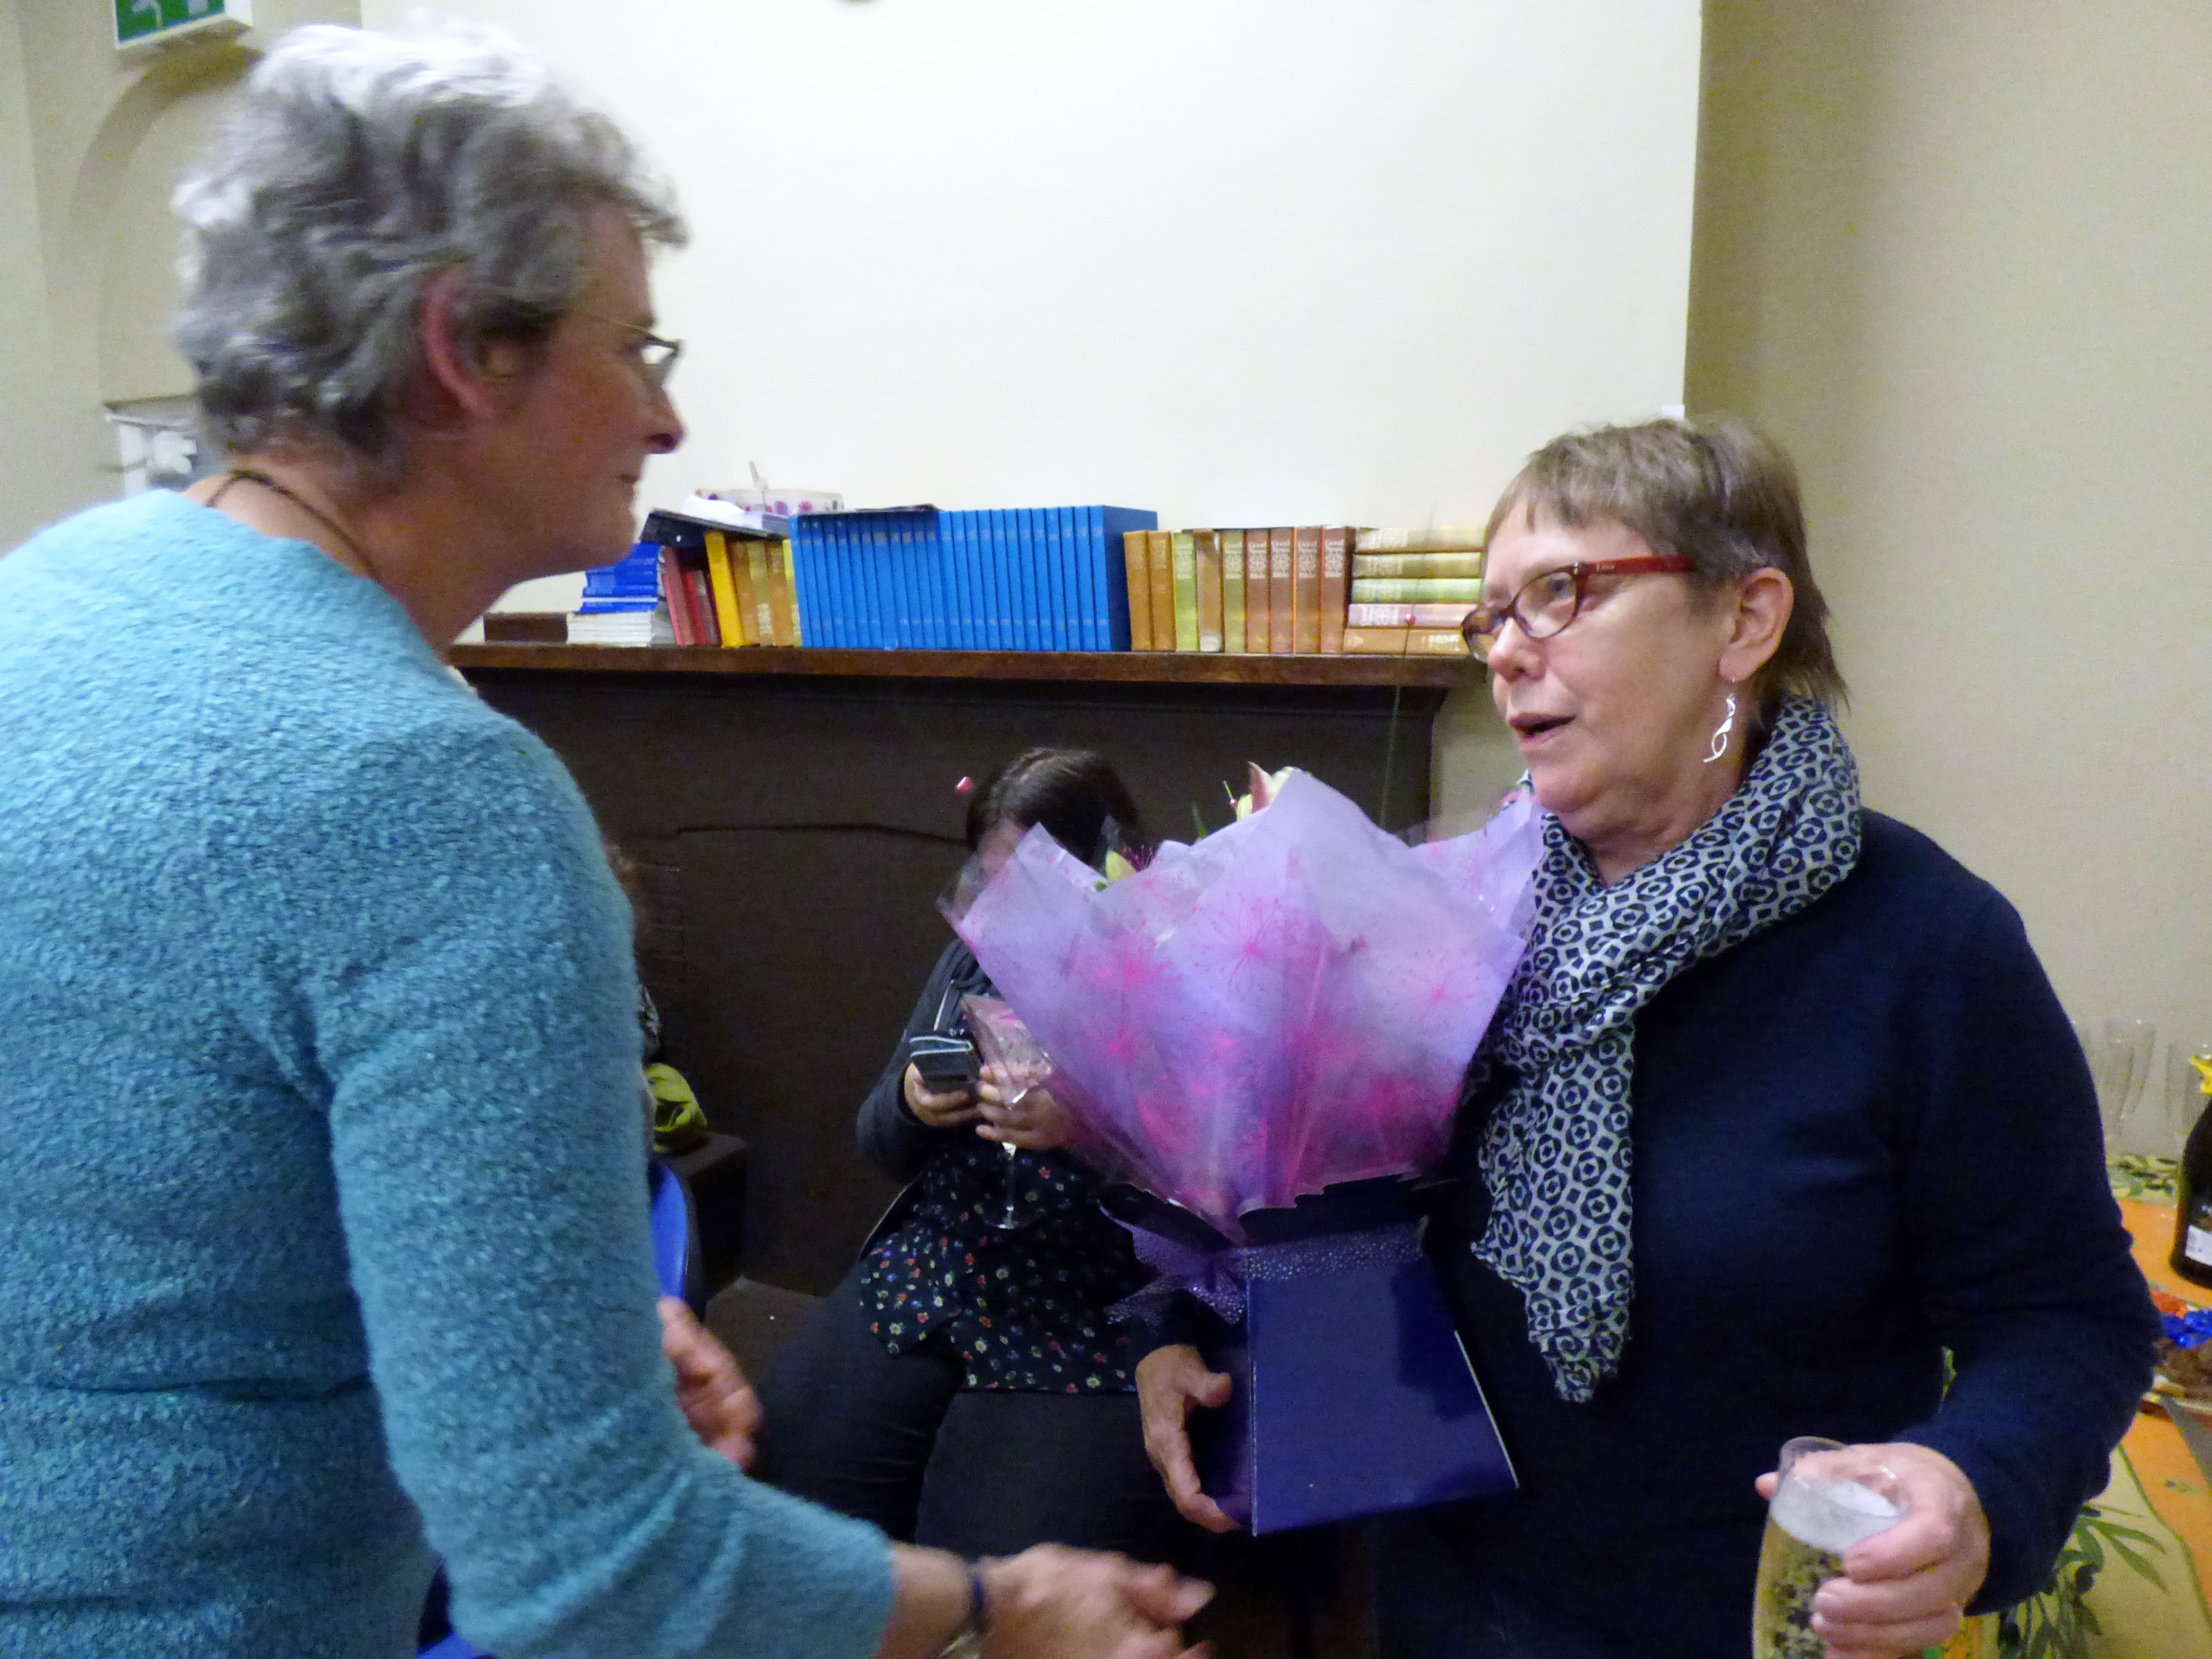 Marie Stacey is retiring as Programme Secretary after a very strenuous year. She is presented with a bouquet by our Chair, Kim Parkman at beautiful result at the end of the design workshop- Kaffe Fassett workshop, All Hallows, Dec 2016